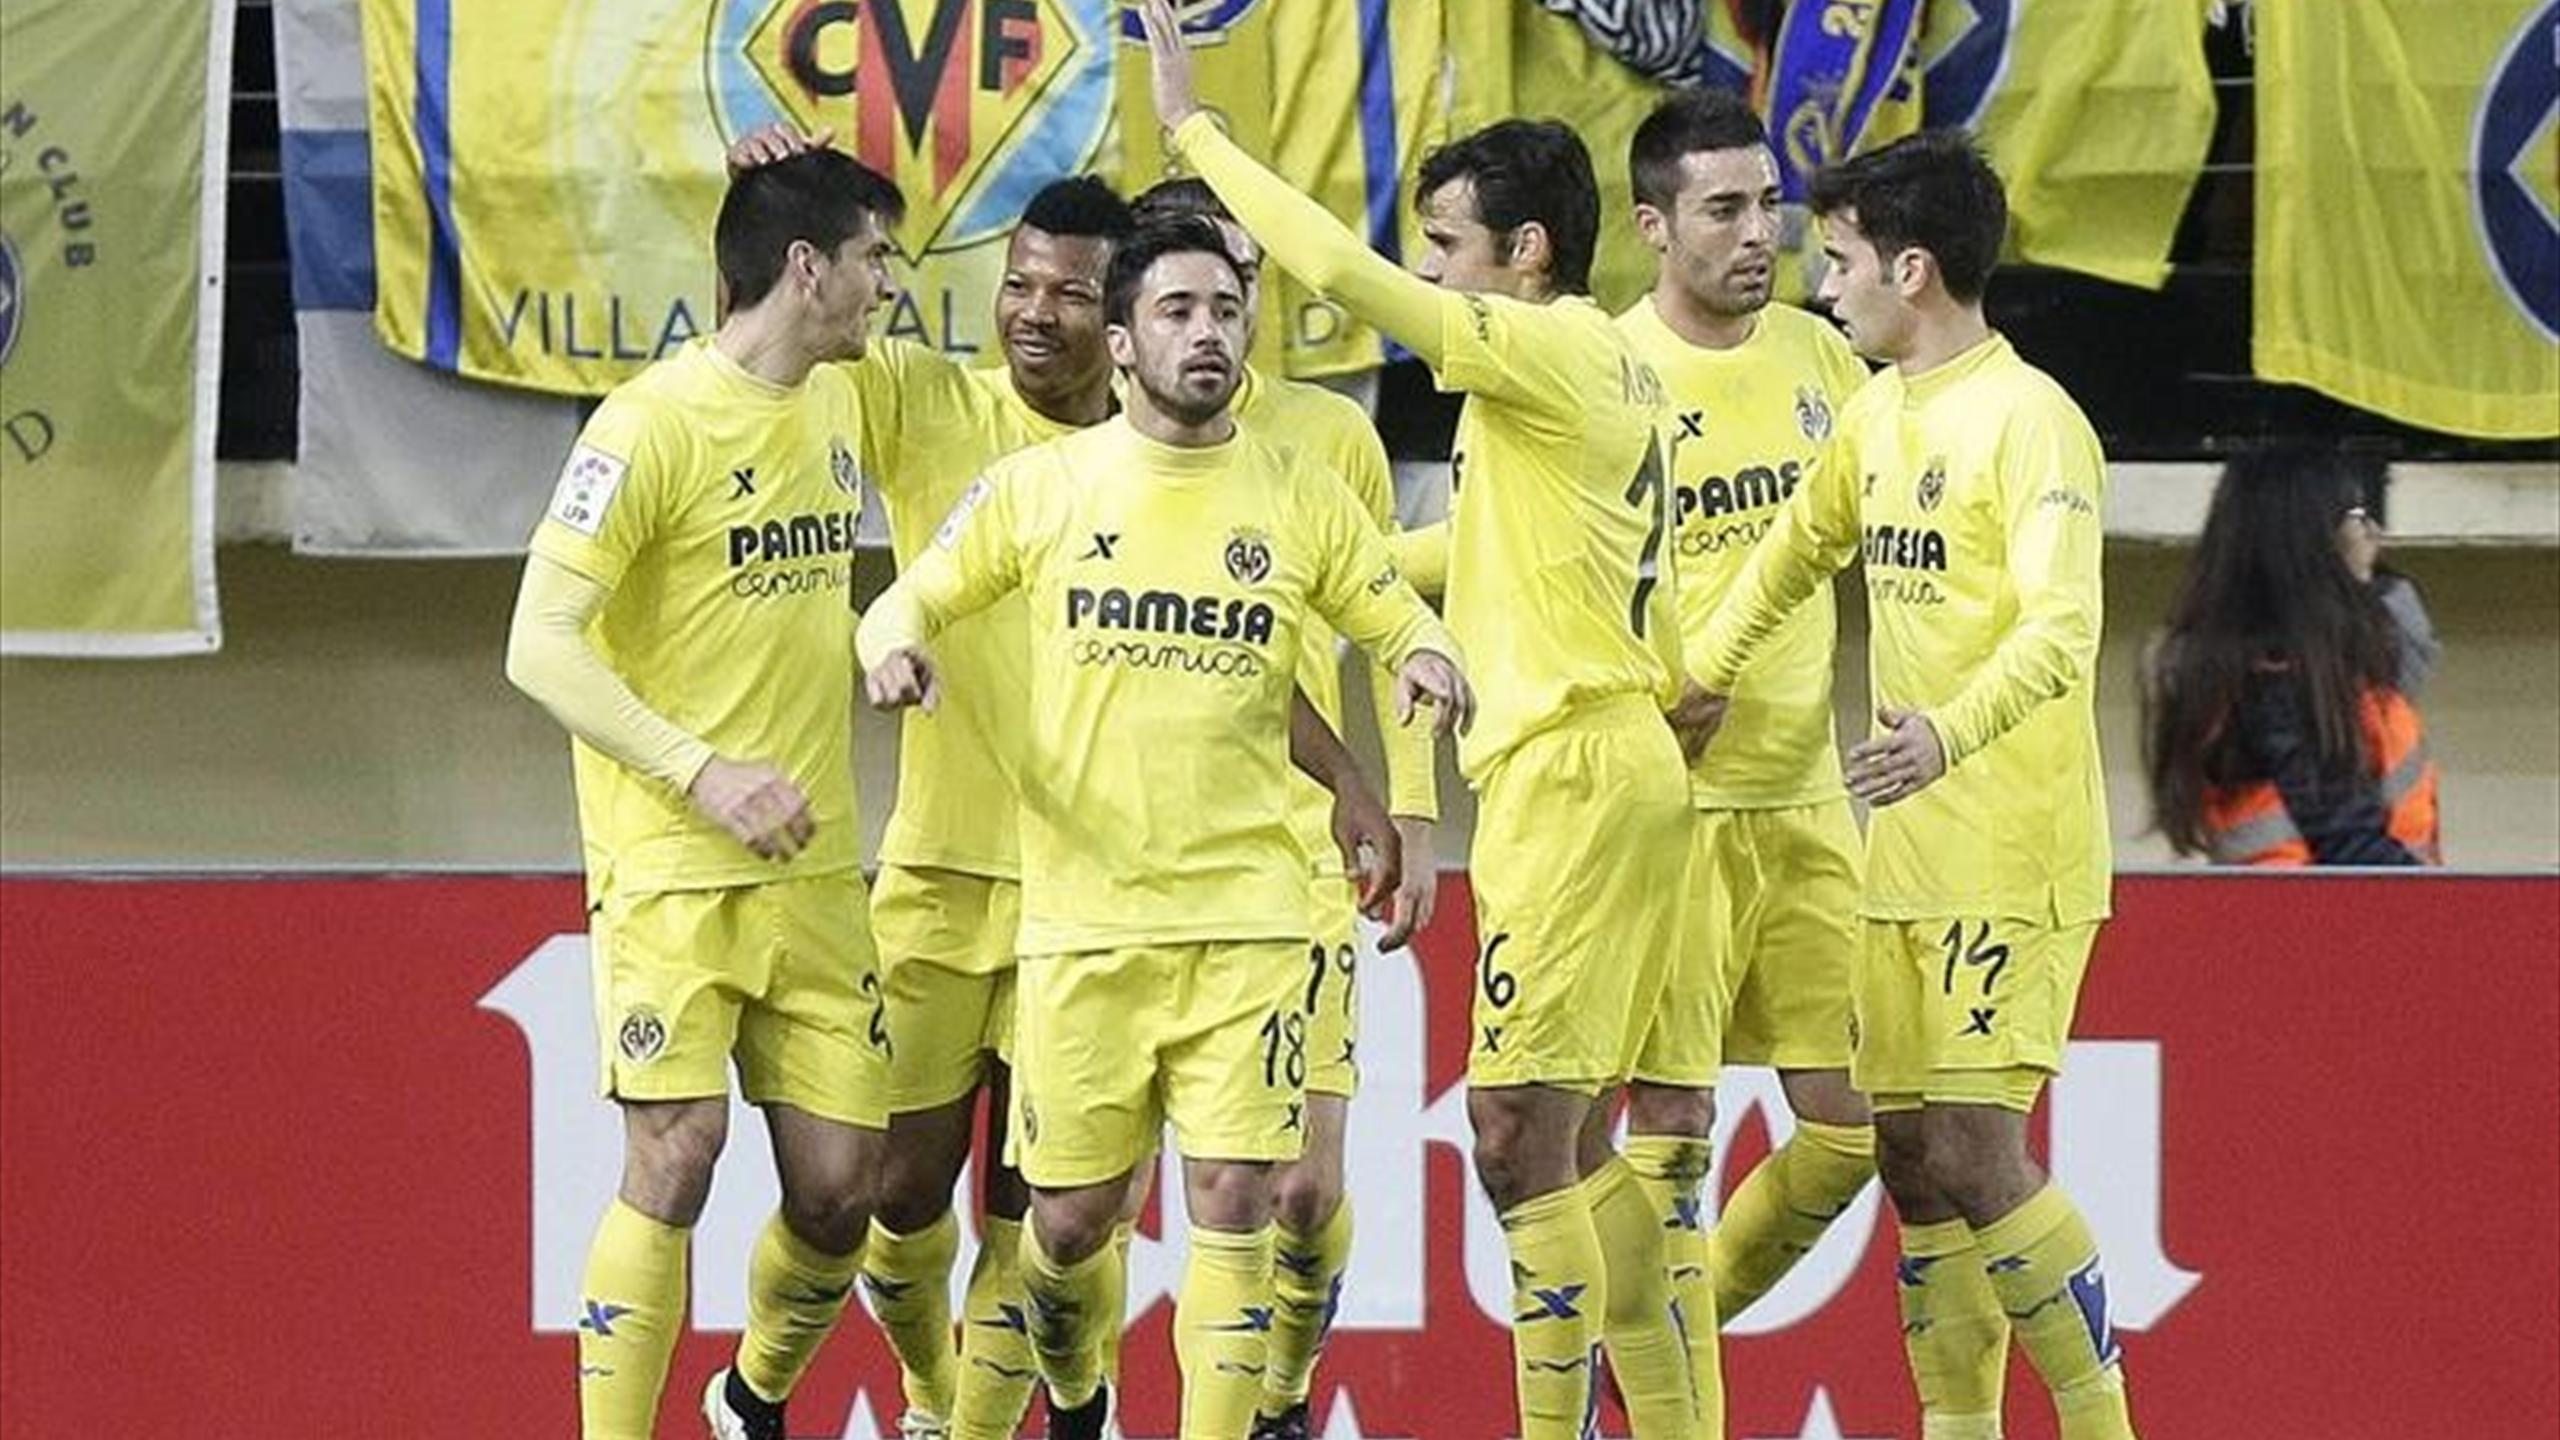 Video: Villarreal vs Granada